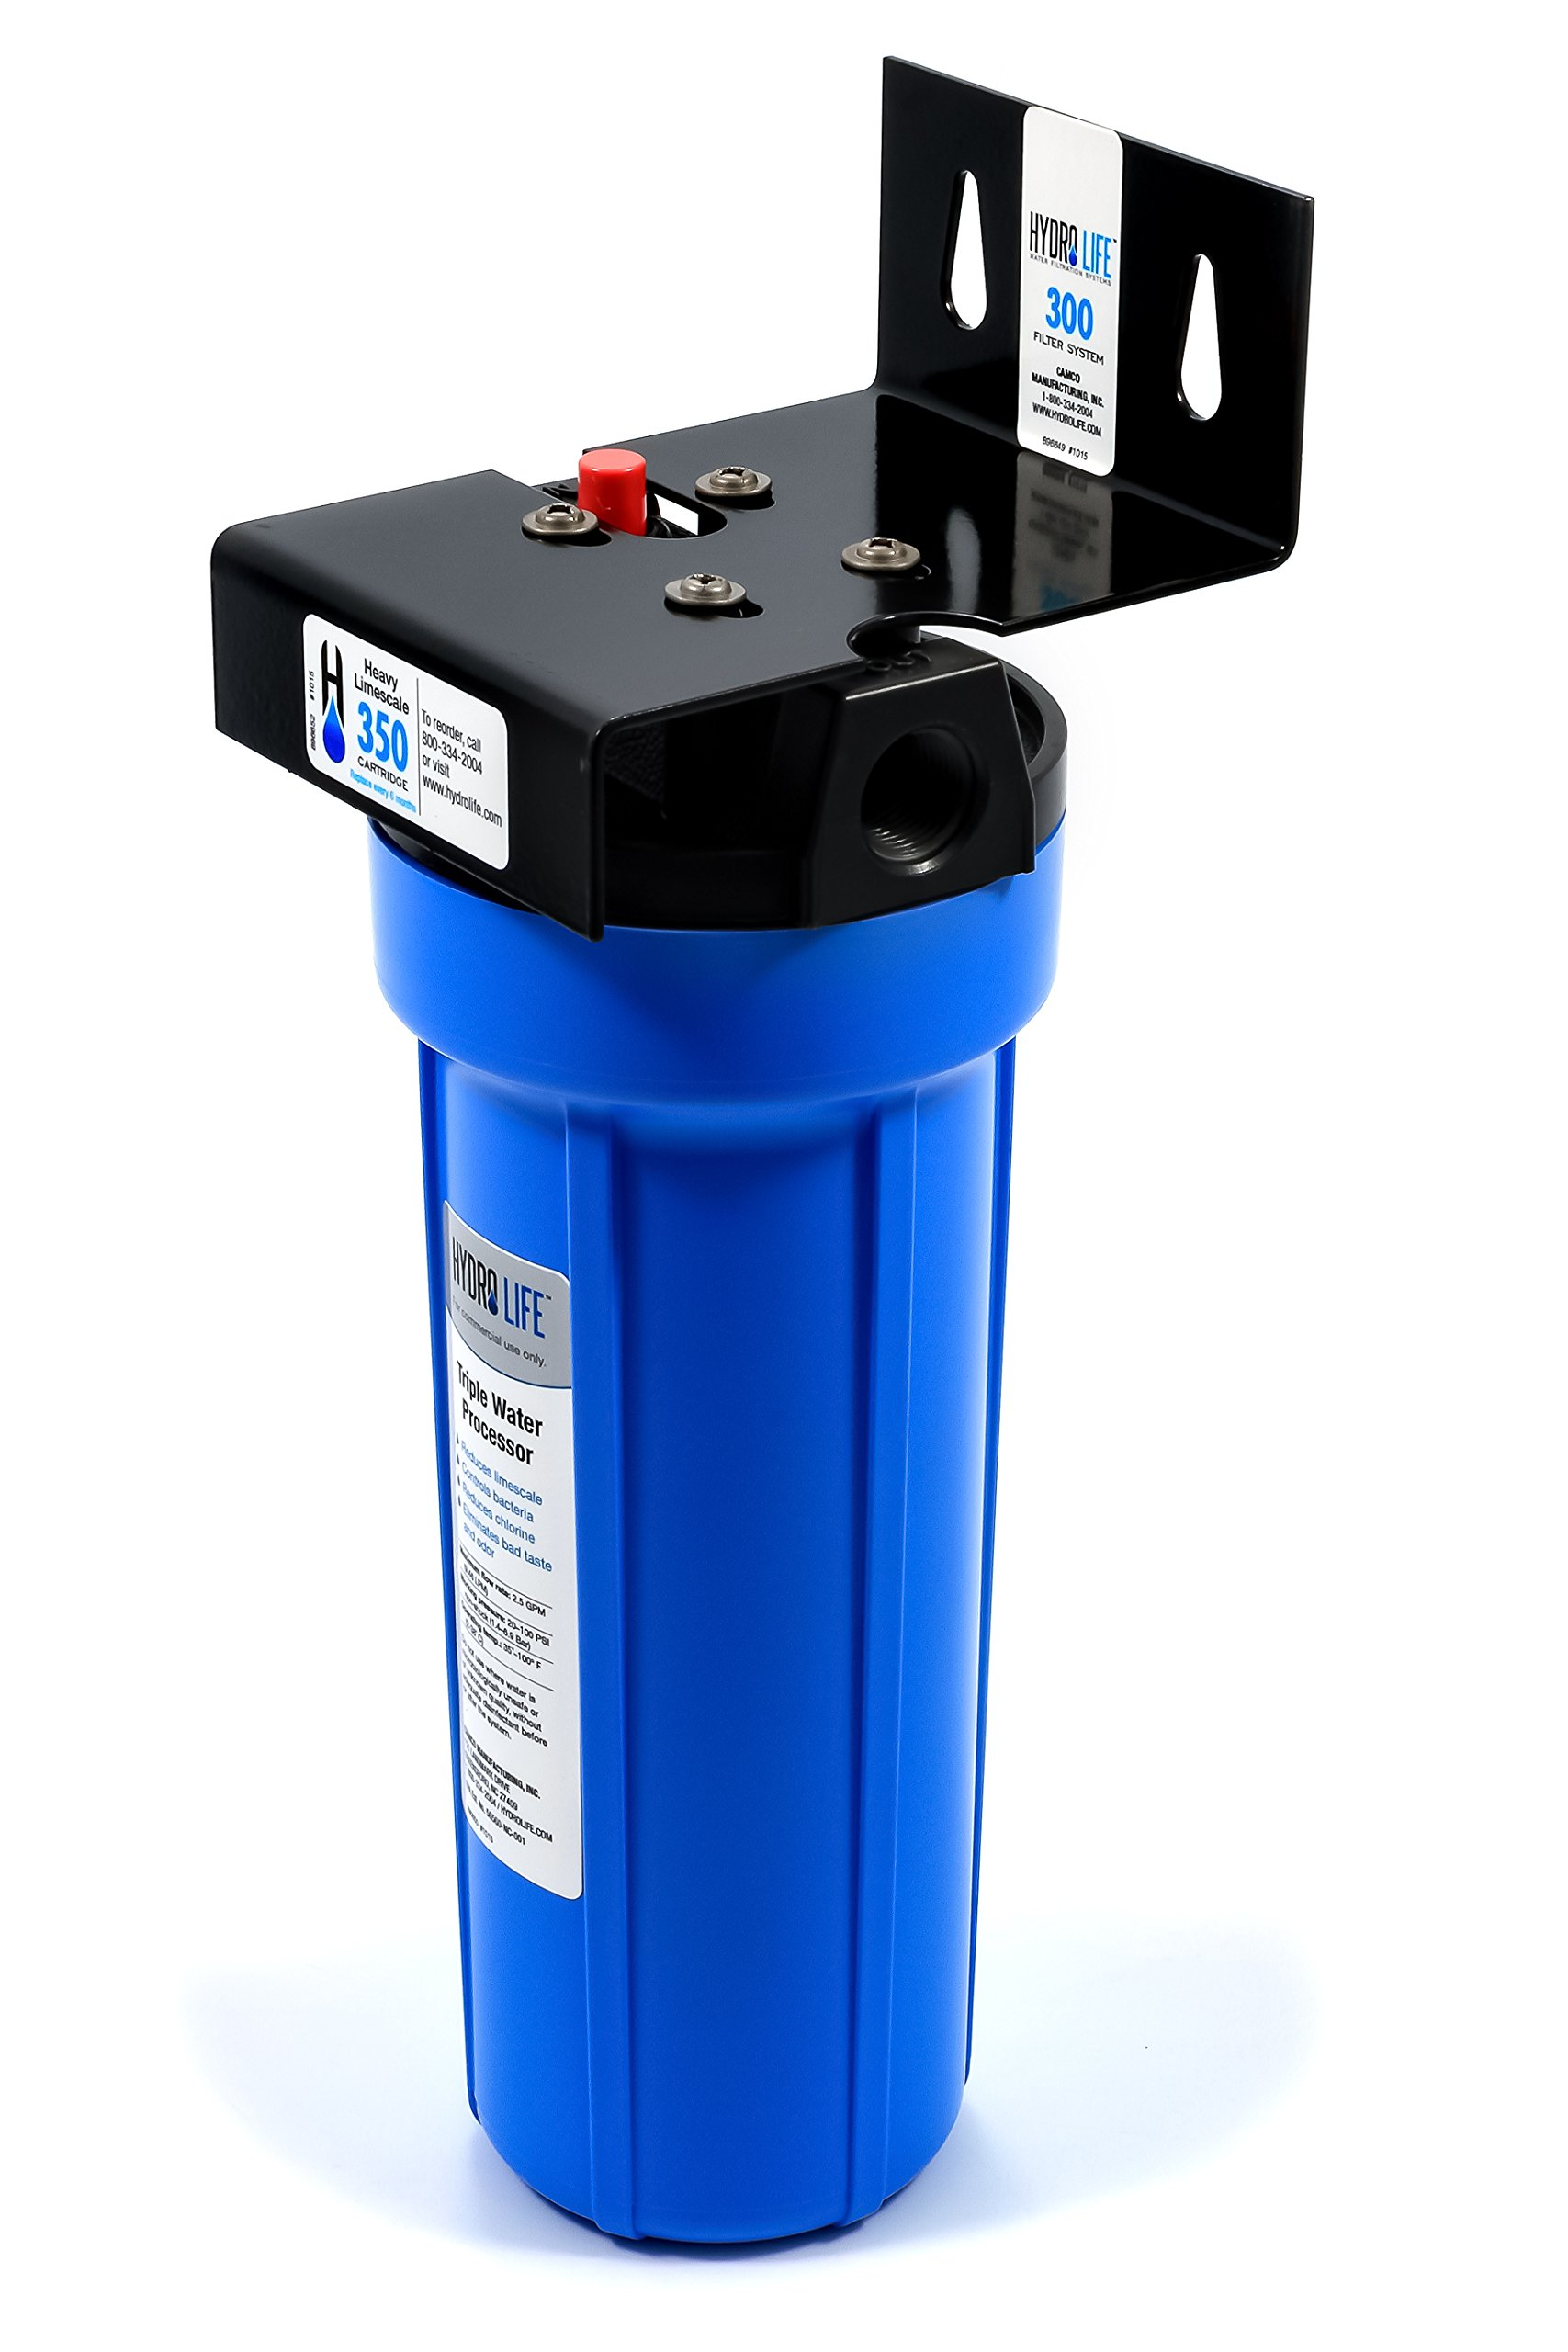 Hydro Life 52640 300 Series Model 300 Filtration System by Hydro Life (Image #2)